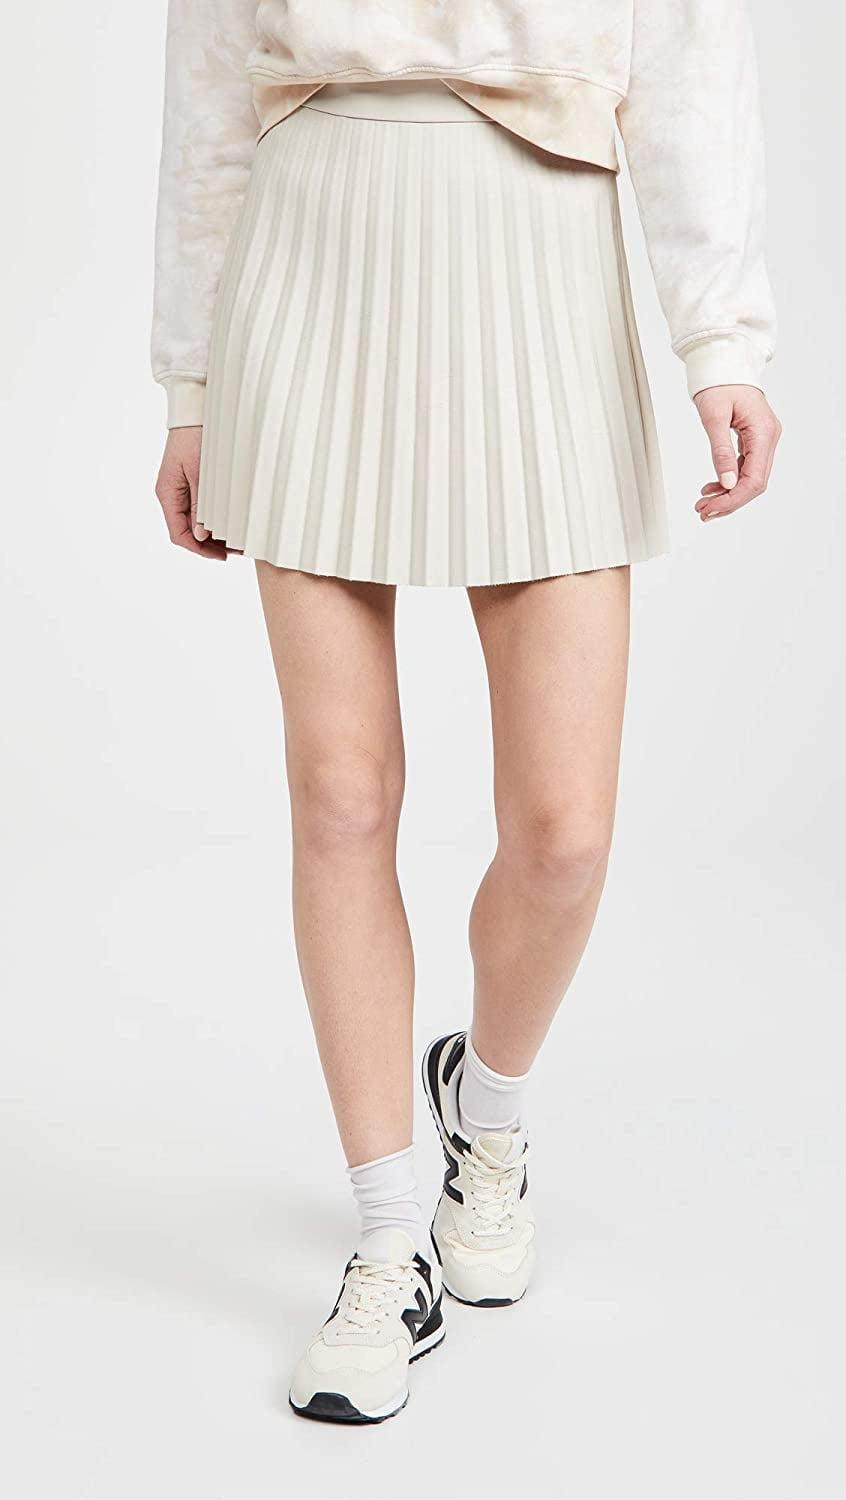 <p>This versatile <span>BB DAKOTA Private School Skirt</span> ($45-$94) is easy to dress both up and down.</p>